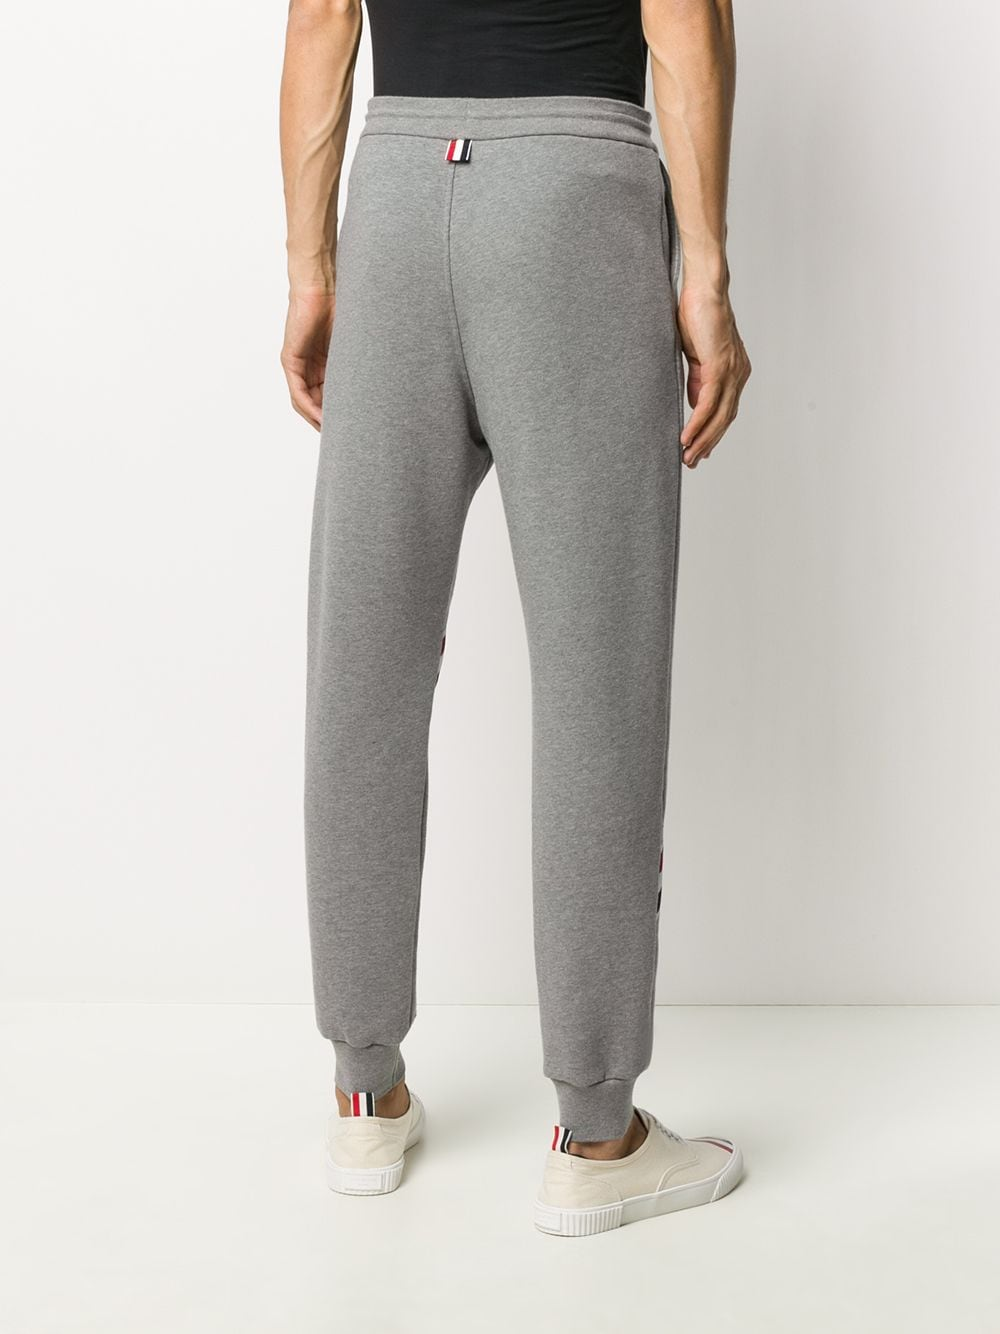 THOM BROWNE MEN SWEATPANTS W/ PRINTED RWB DIAGONAL STRIPE IN CLASSIC LOOPBACK